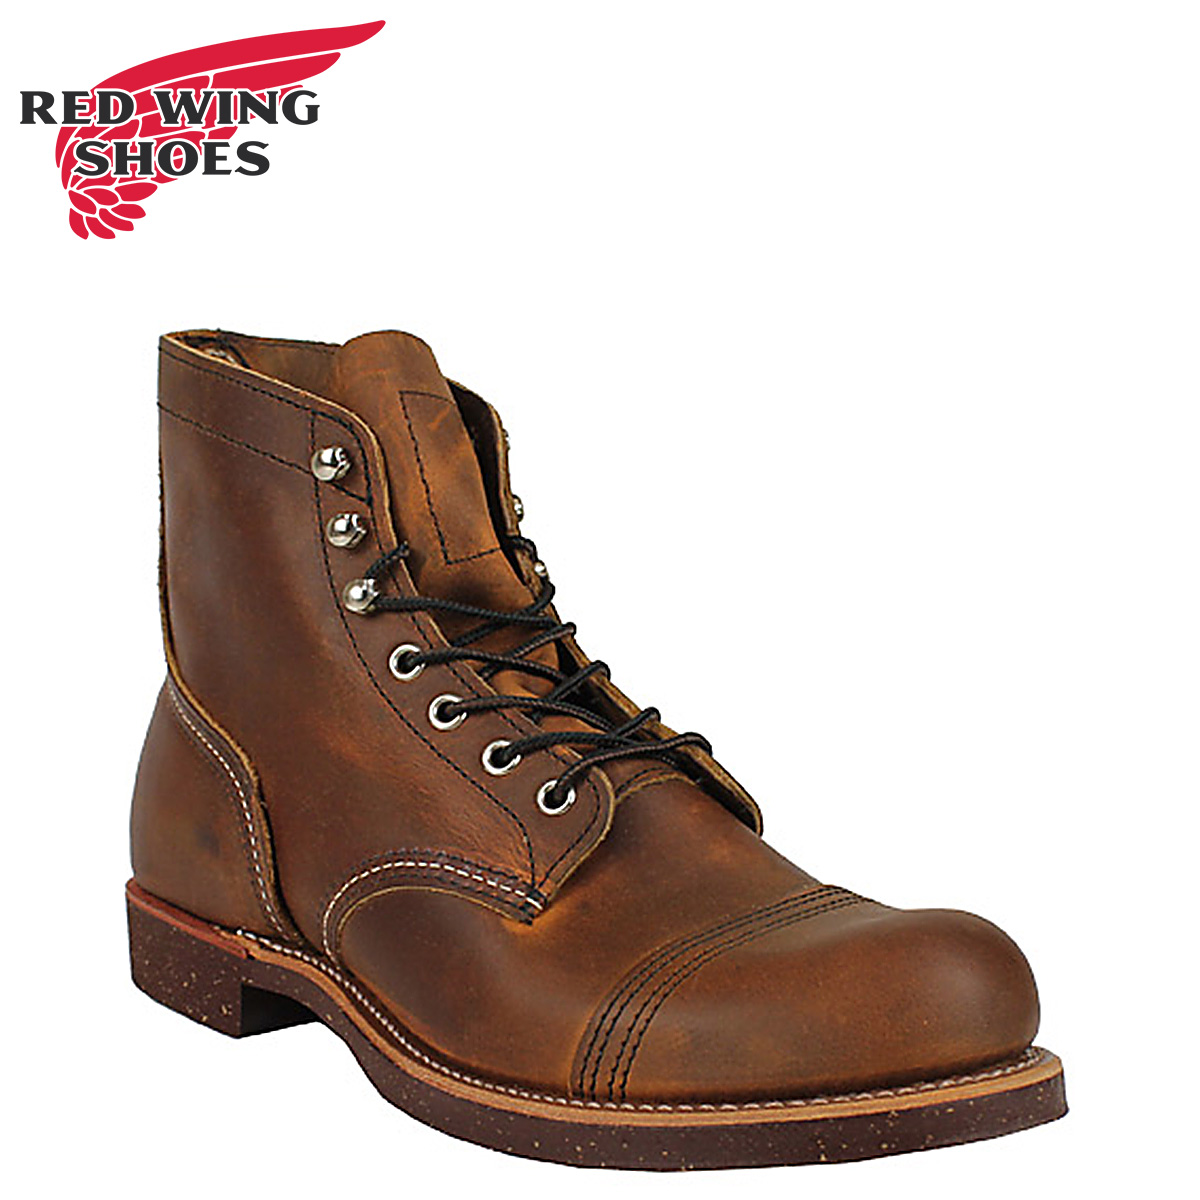 red wing boots discount cheap online